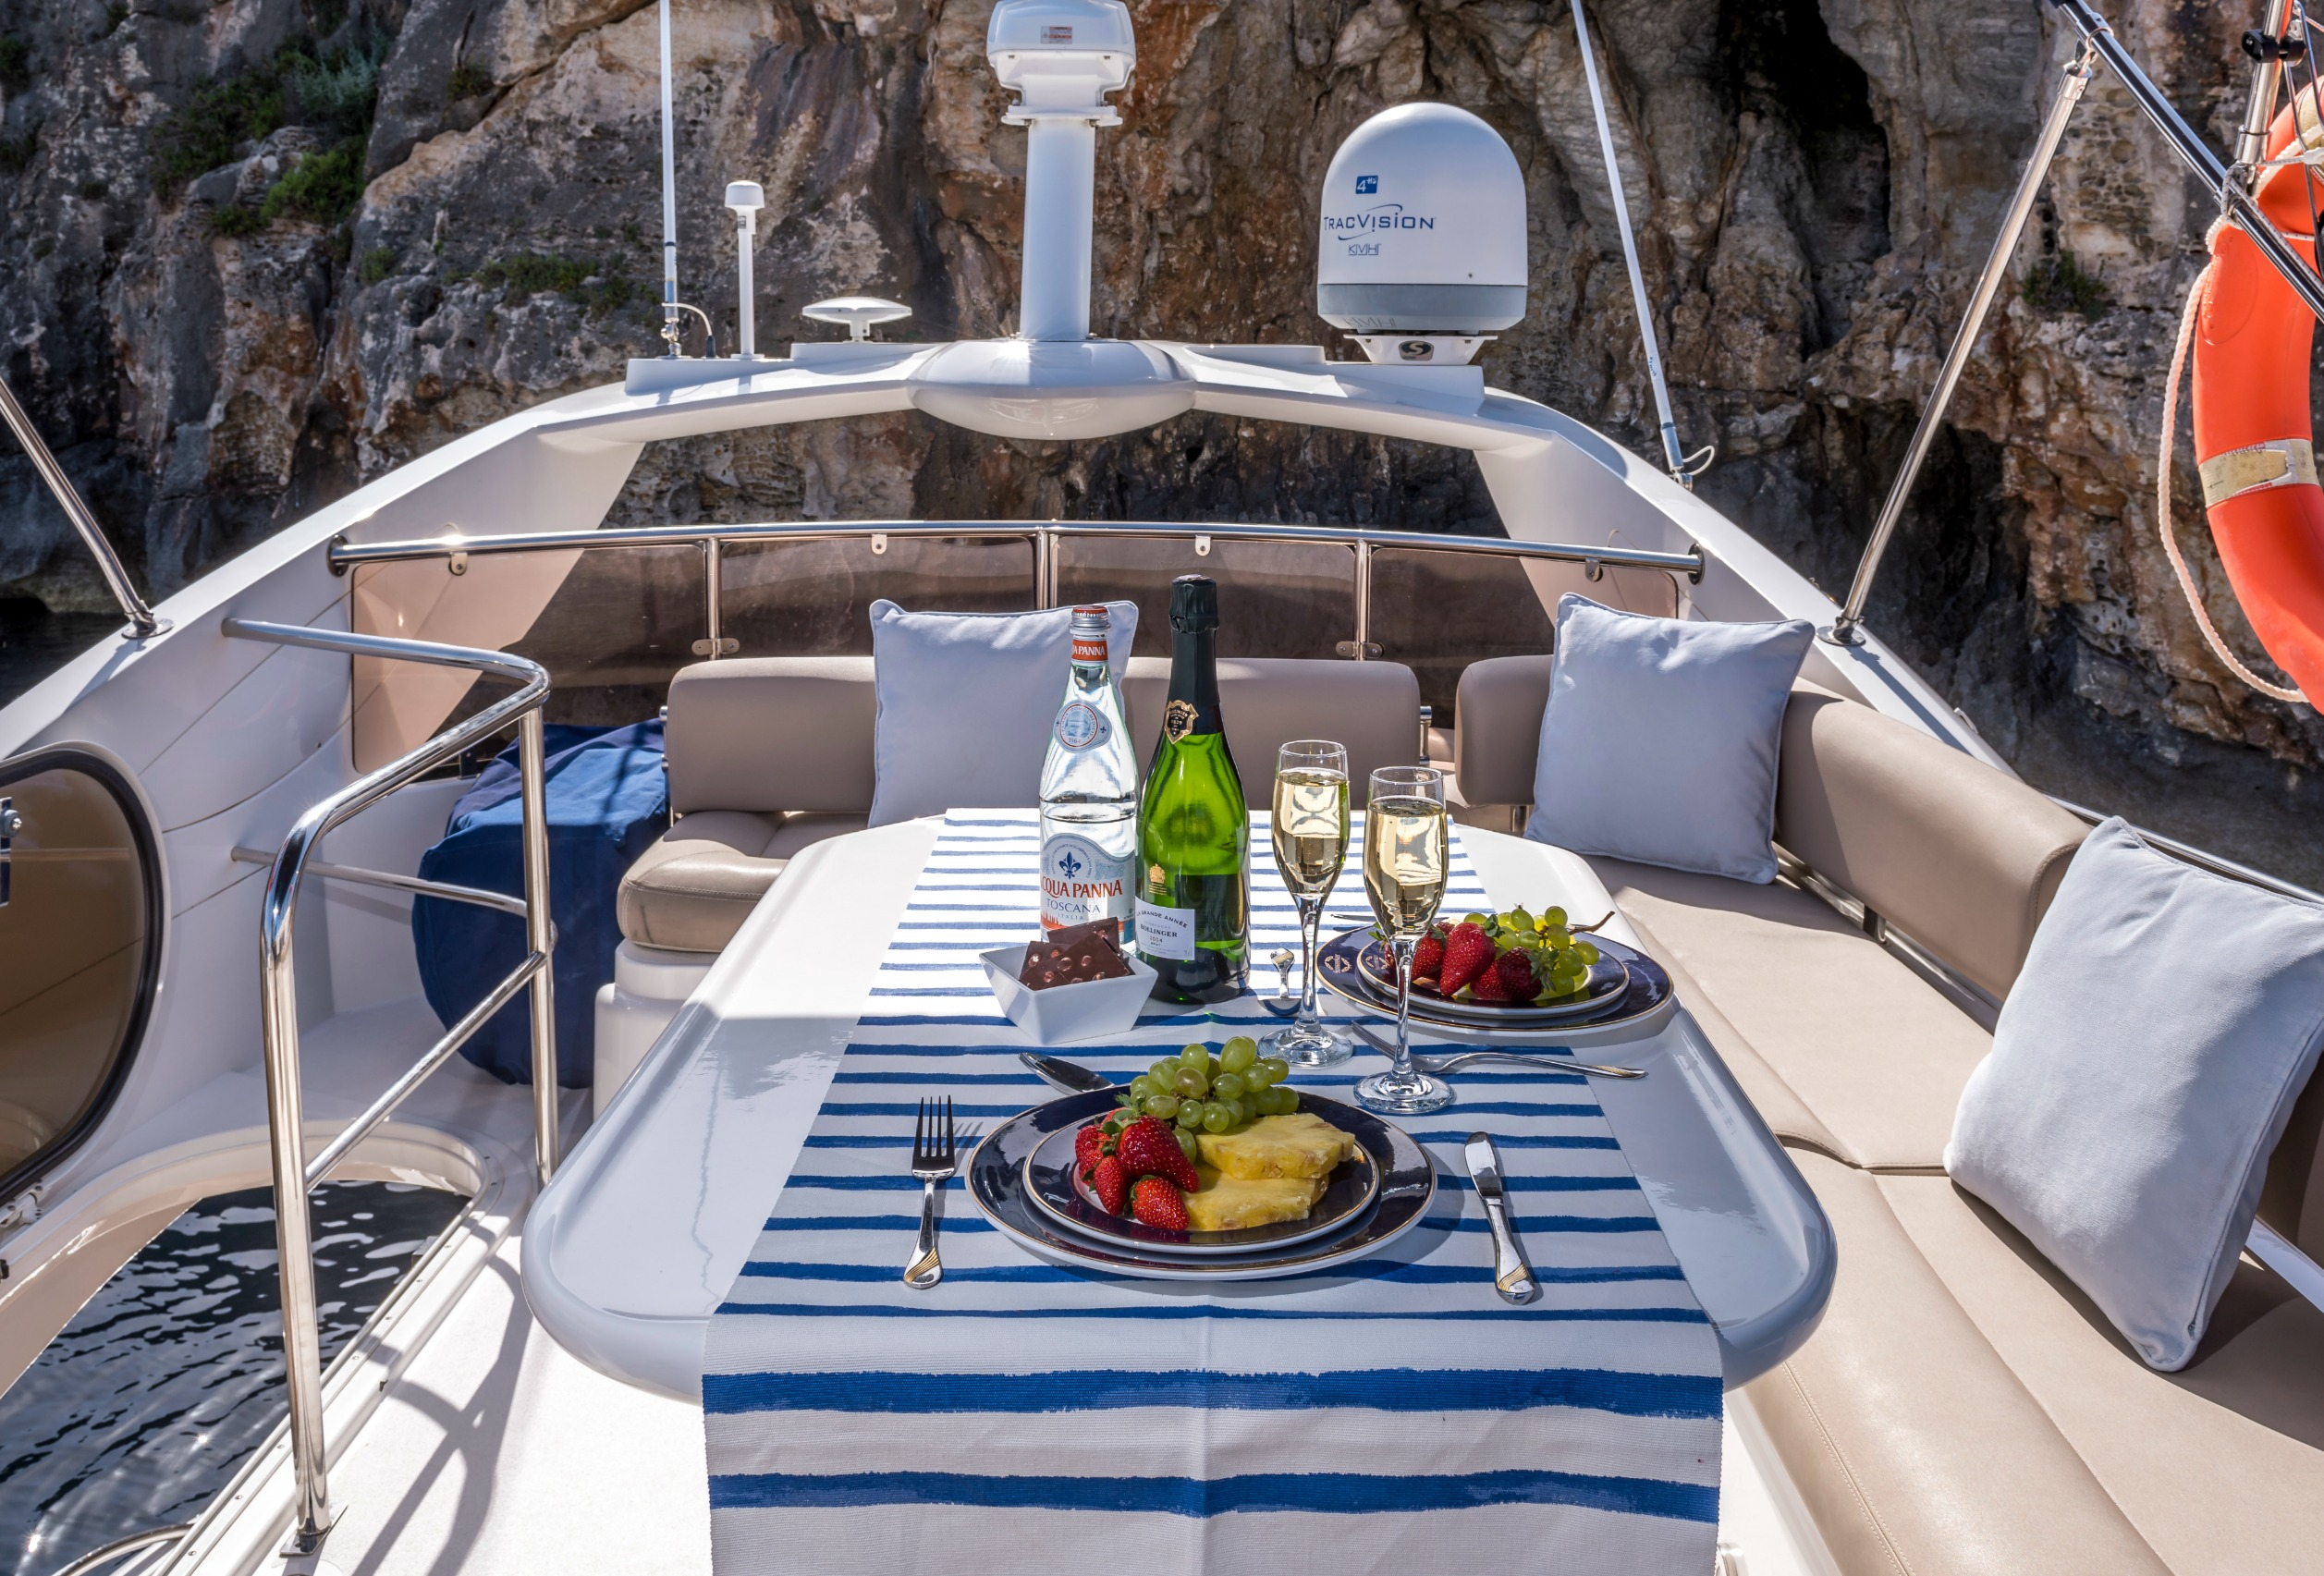 Romantic Yacht Getaways, Date Ideas & Special Occasions